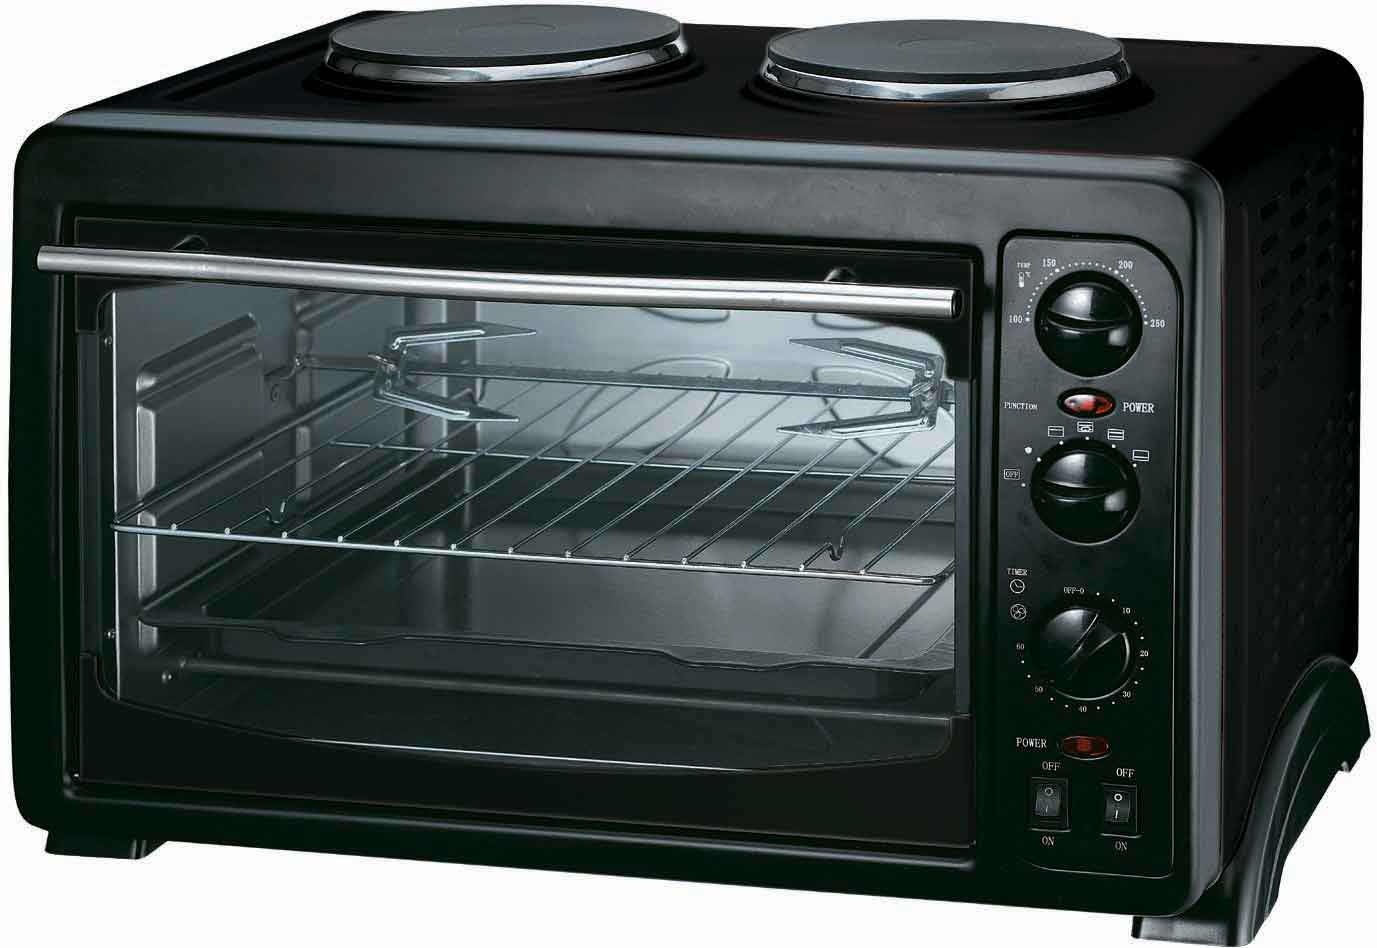 Best Small Toaster Oven in Black